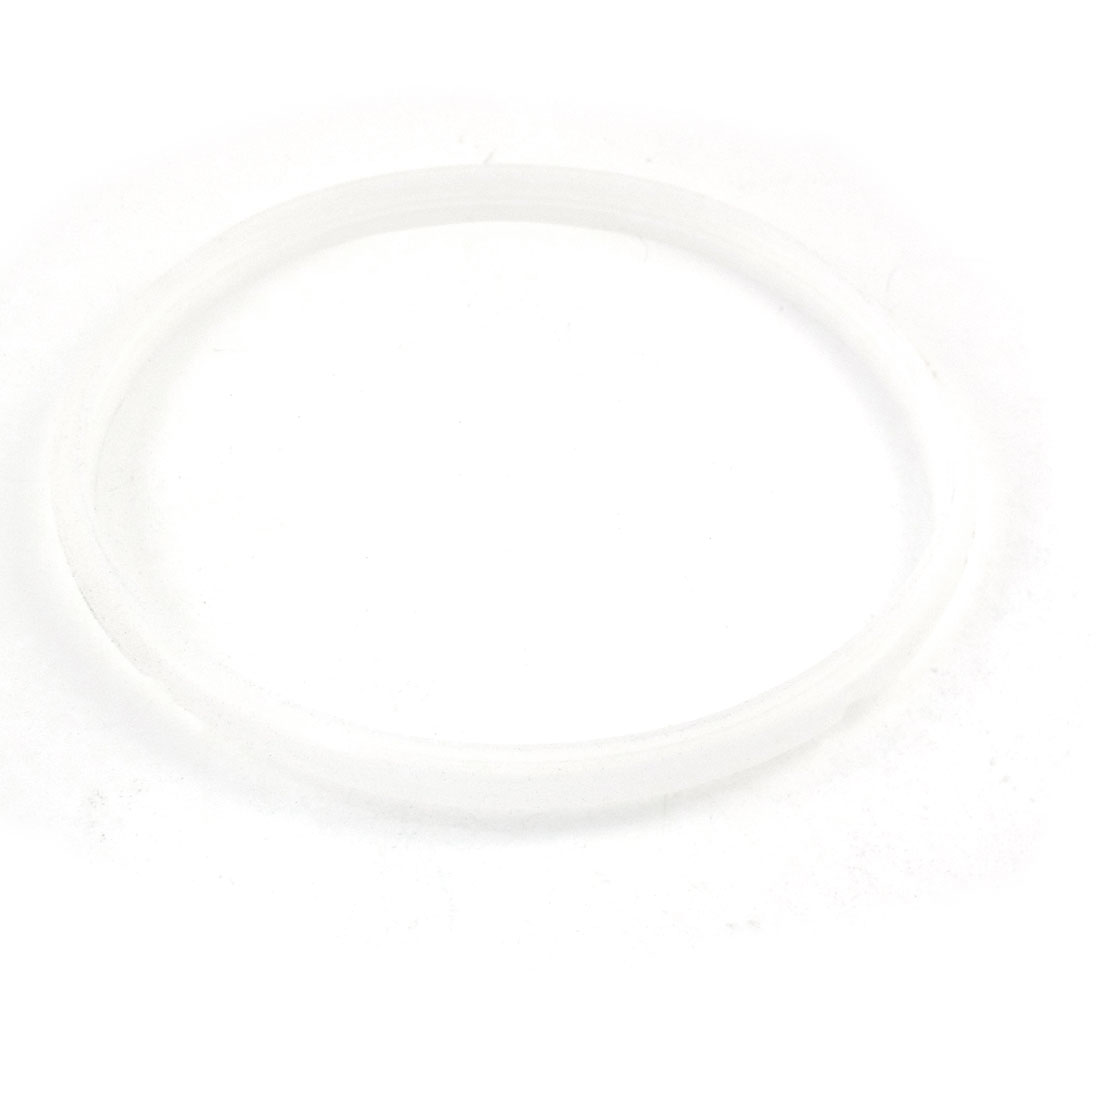 22cm Diameter Clear Silicone Gasket Sealing Ring for Pressure Cooker